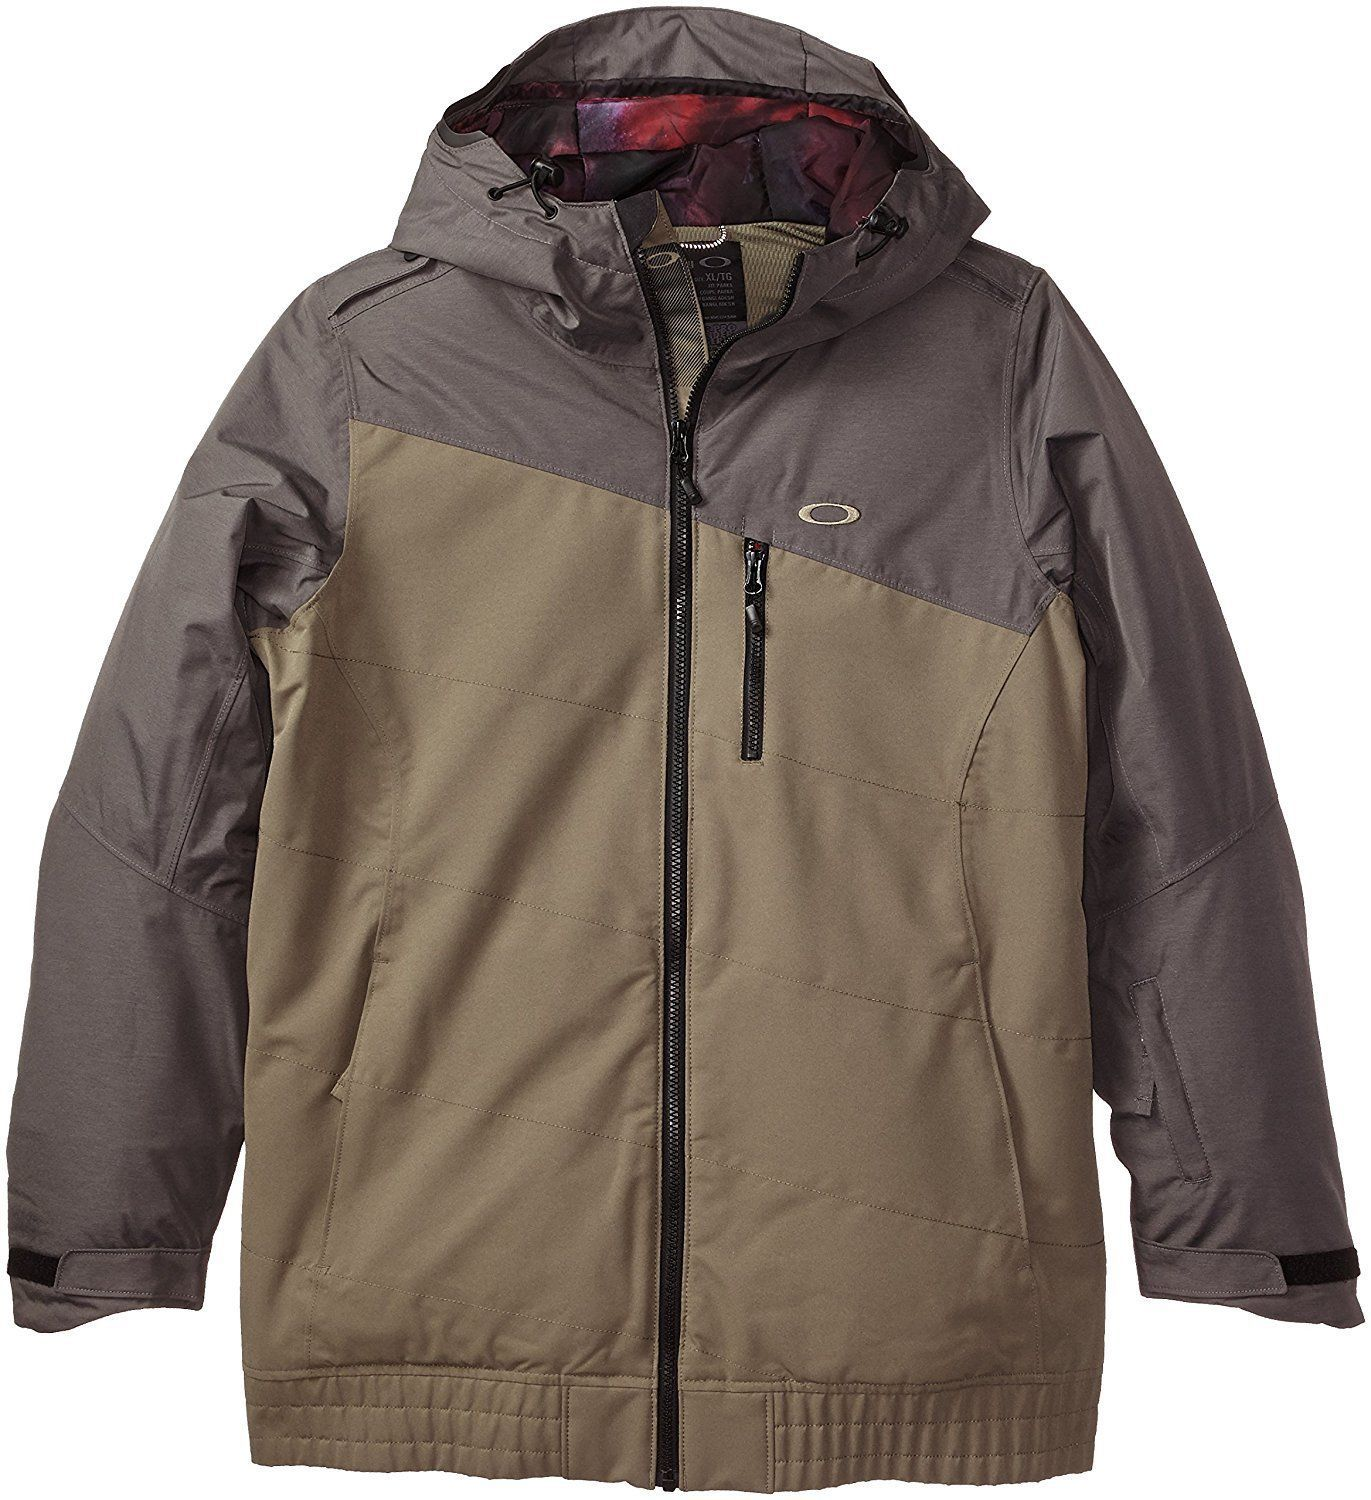 Oakley QUEBEC INSULATED Women's M MD Winter Ski Snowbaord Jacket WORN OLIVE NEW